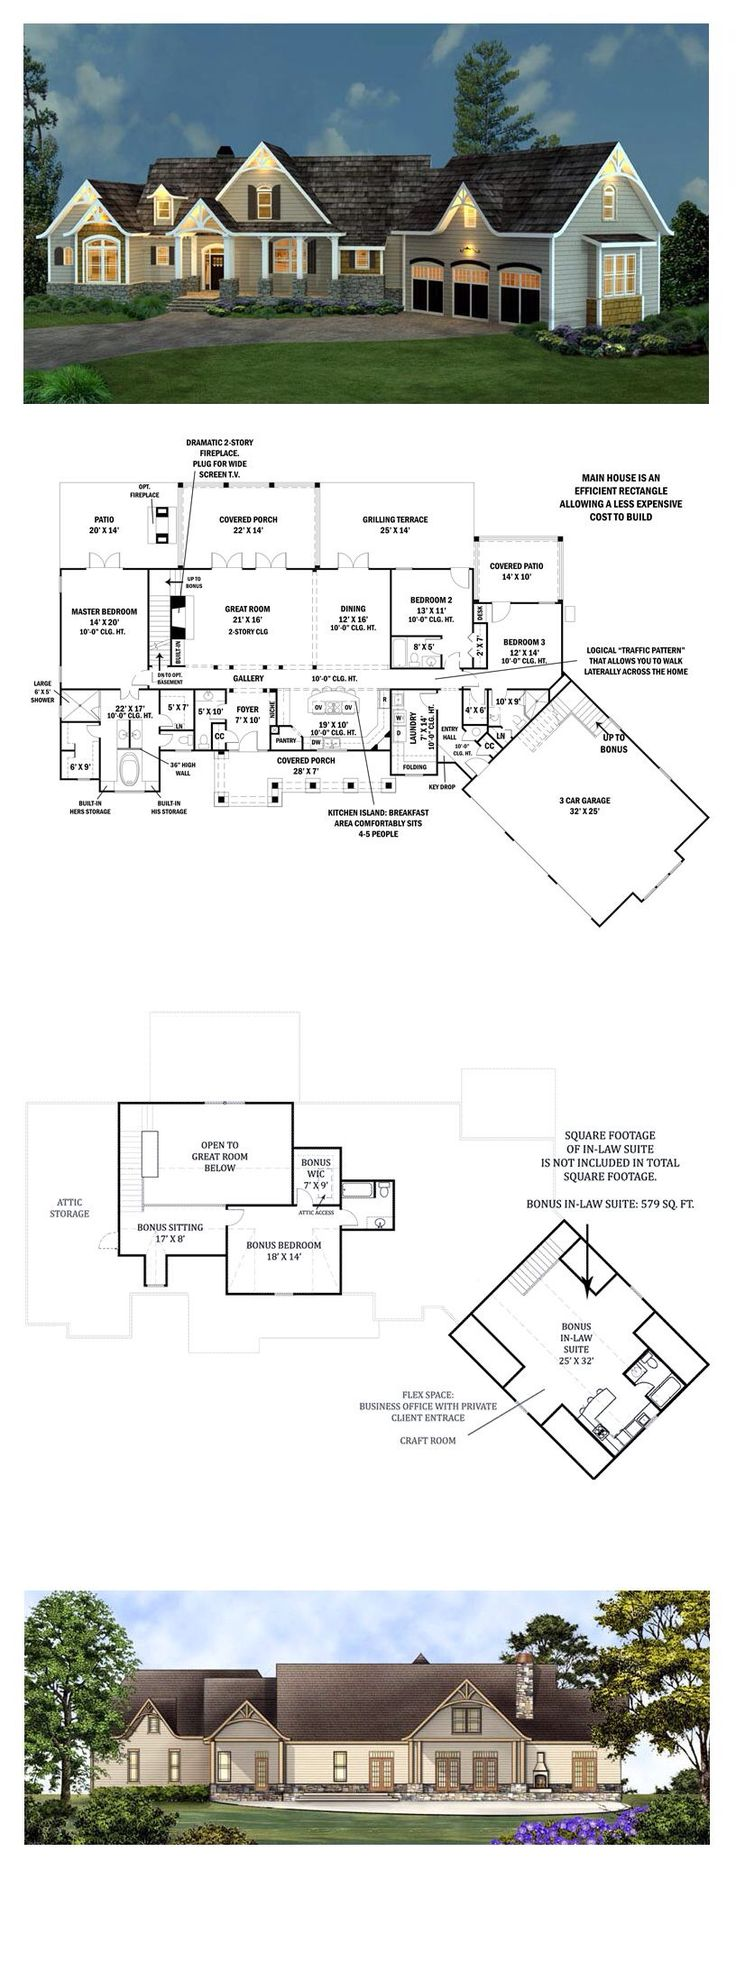 Einzigartige grundrisse handwerkerarthaus hauspläne rustic home floor plans house design ideas floor plans country ranch house plans angled house plans